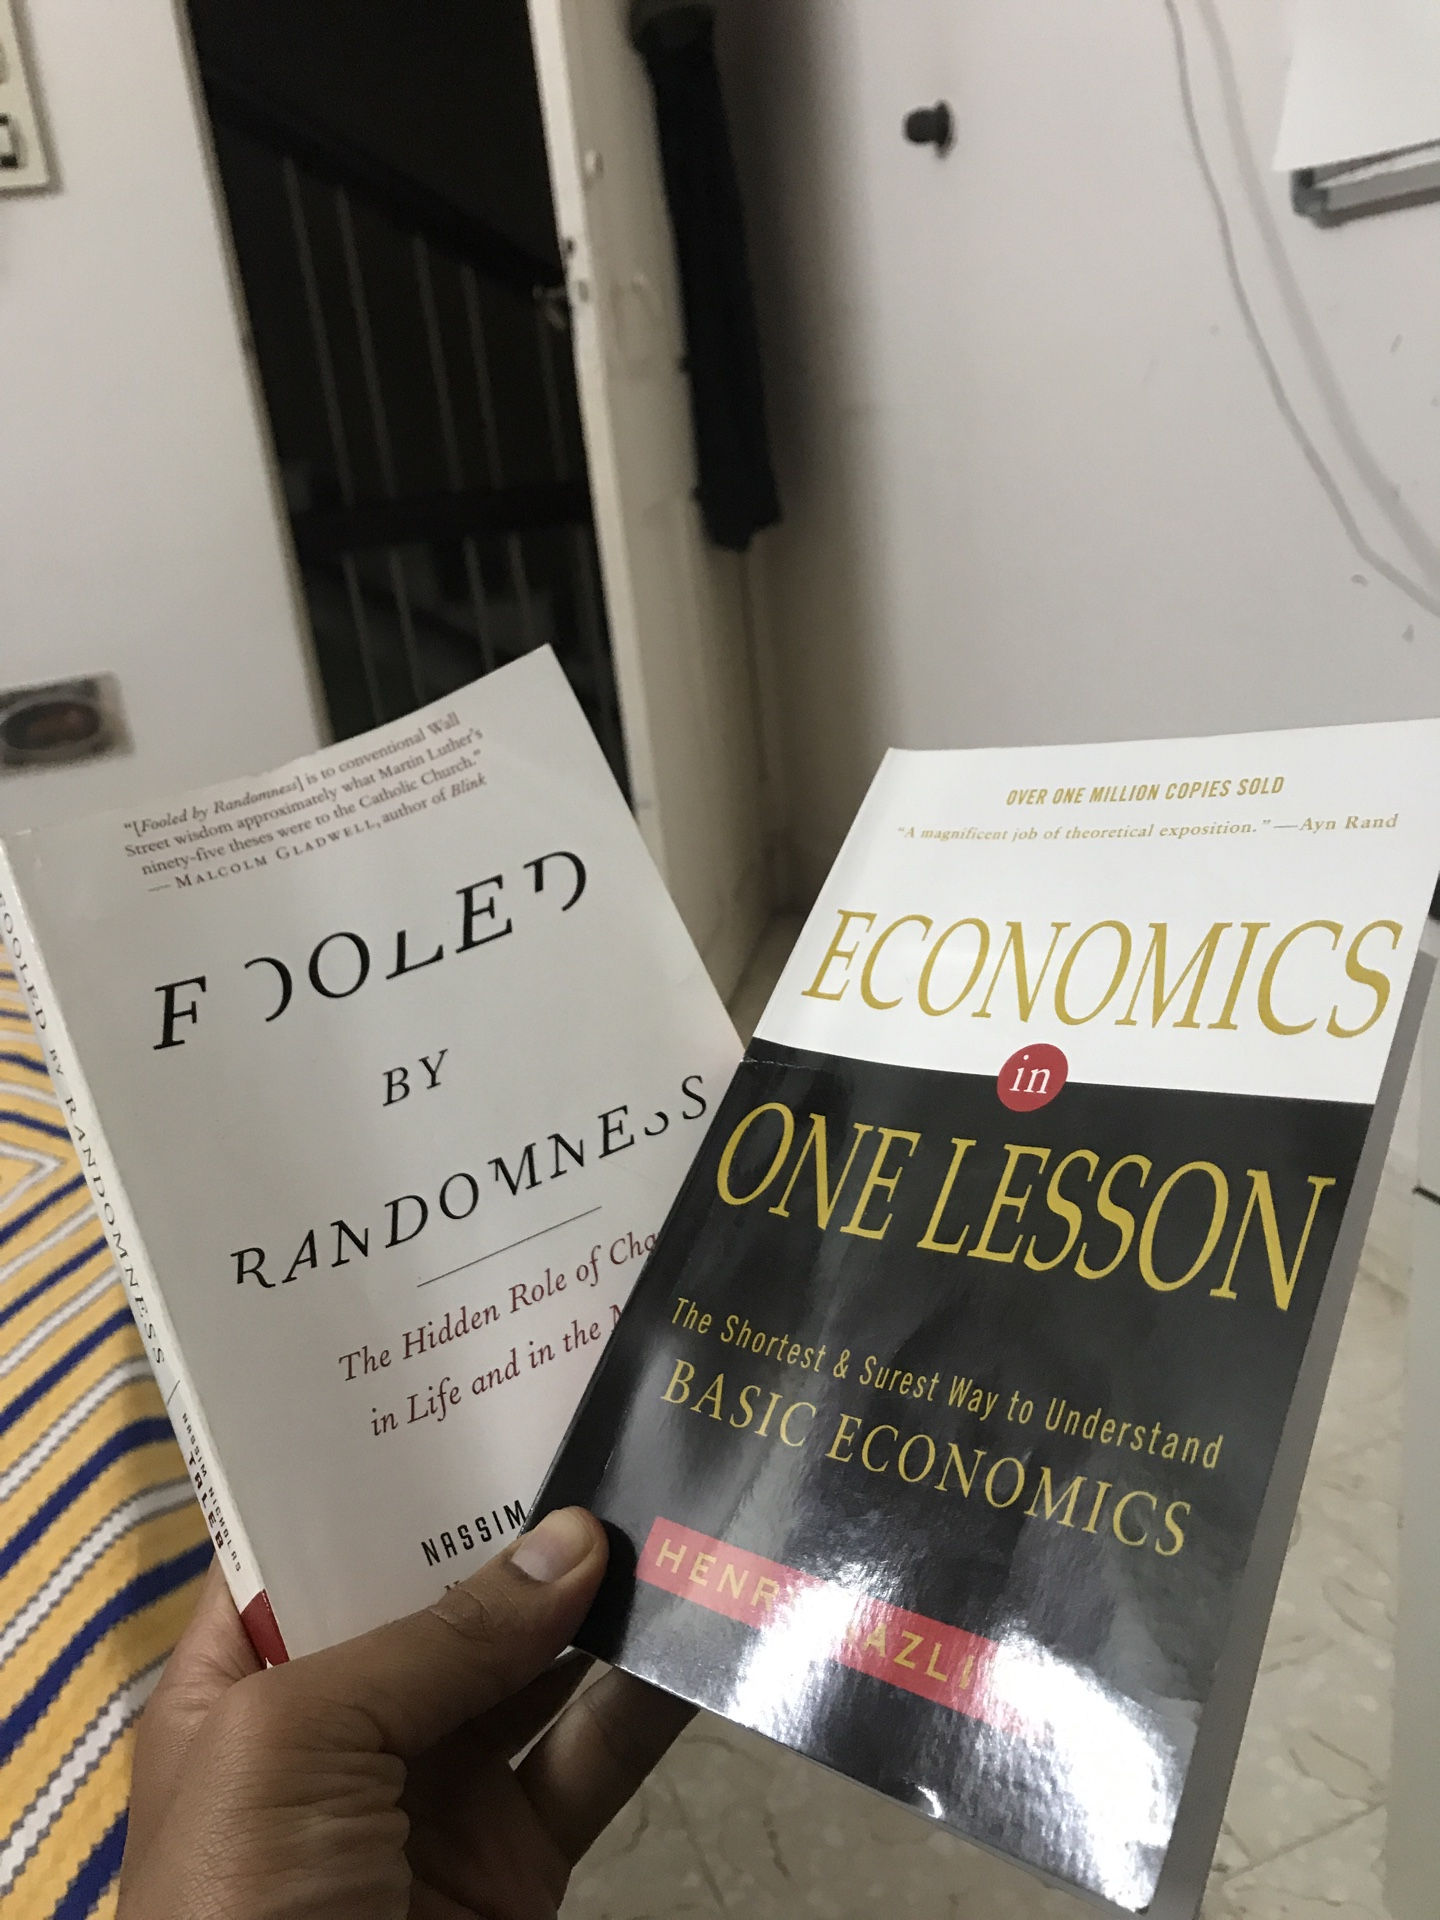 Two books that I am reading - Fooled by Randomness and Economics in one lesson